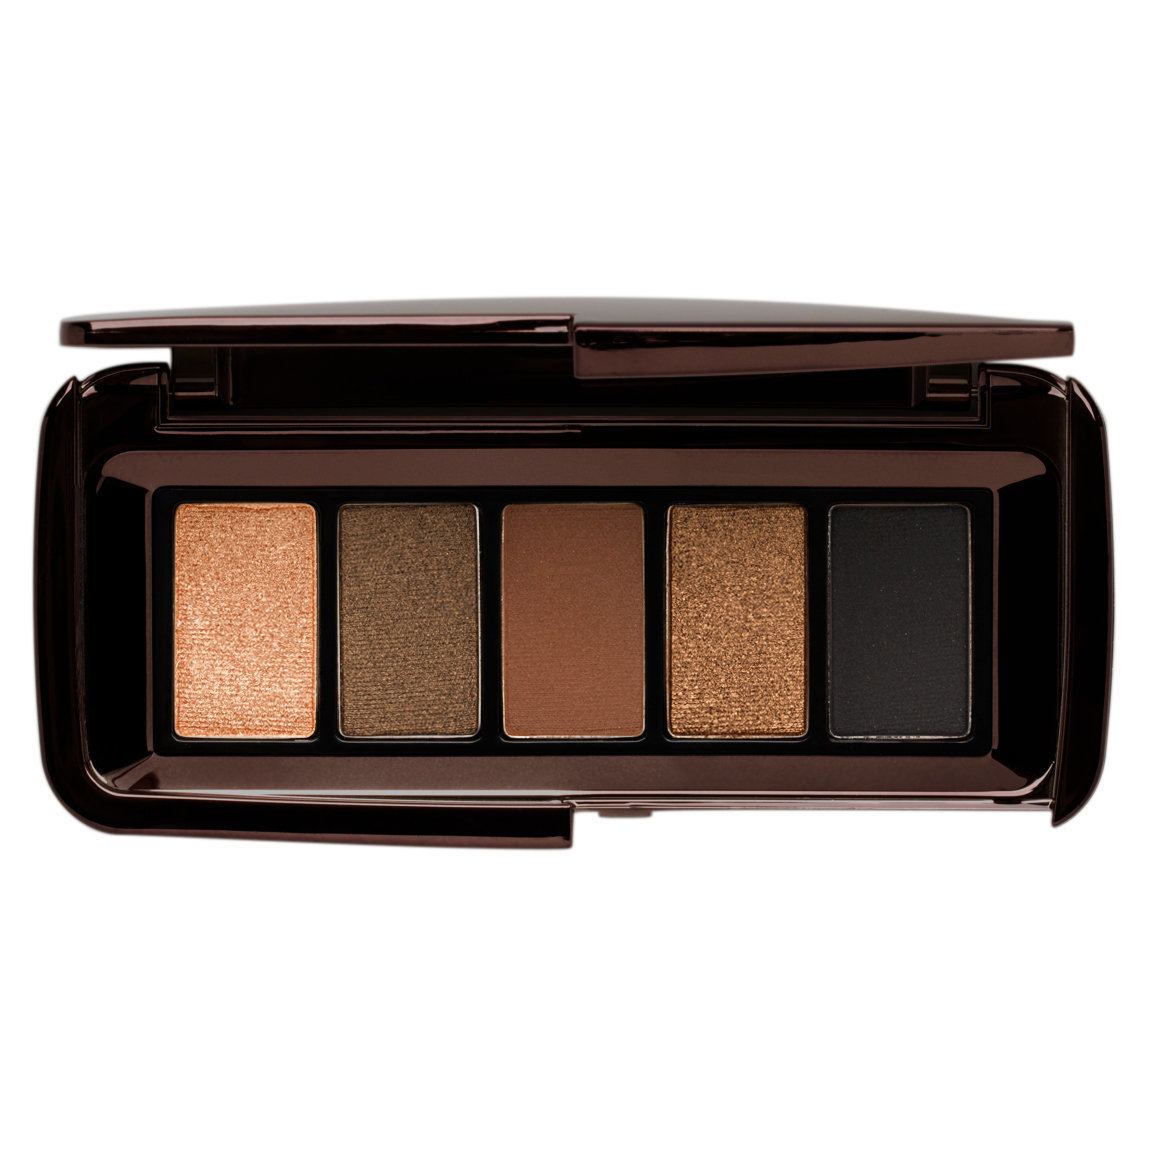 Hourglass Graphik Eyeshadow Palette Vista product swatch.